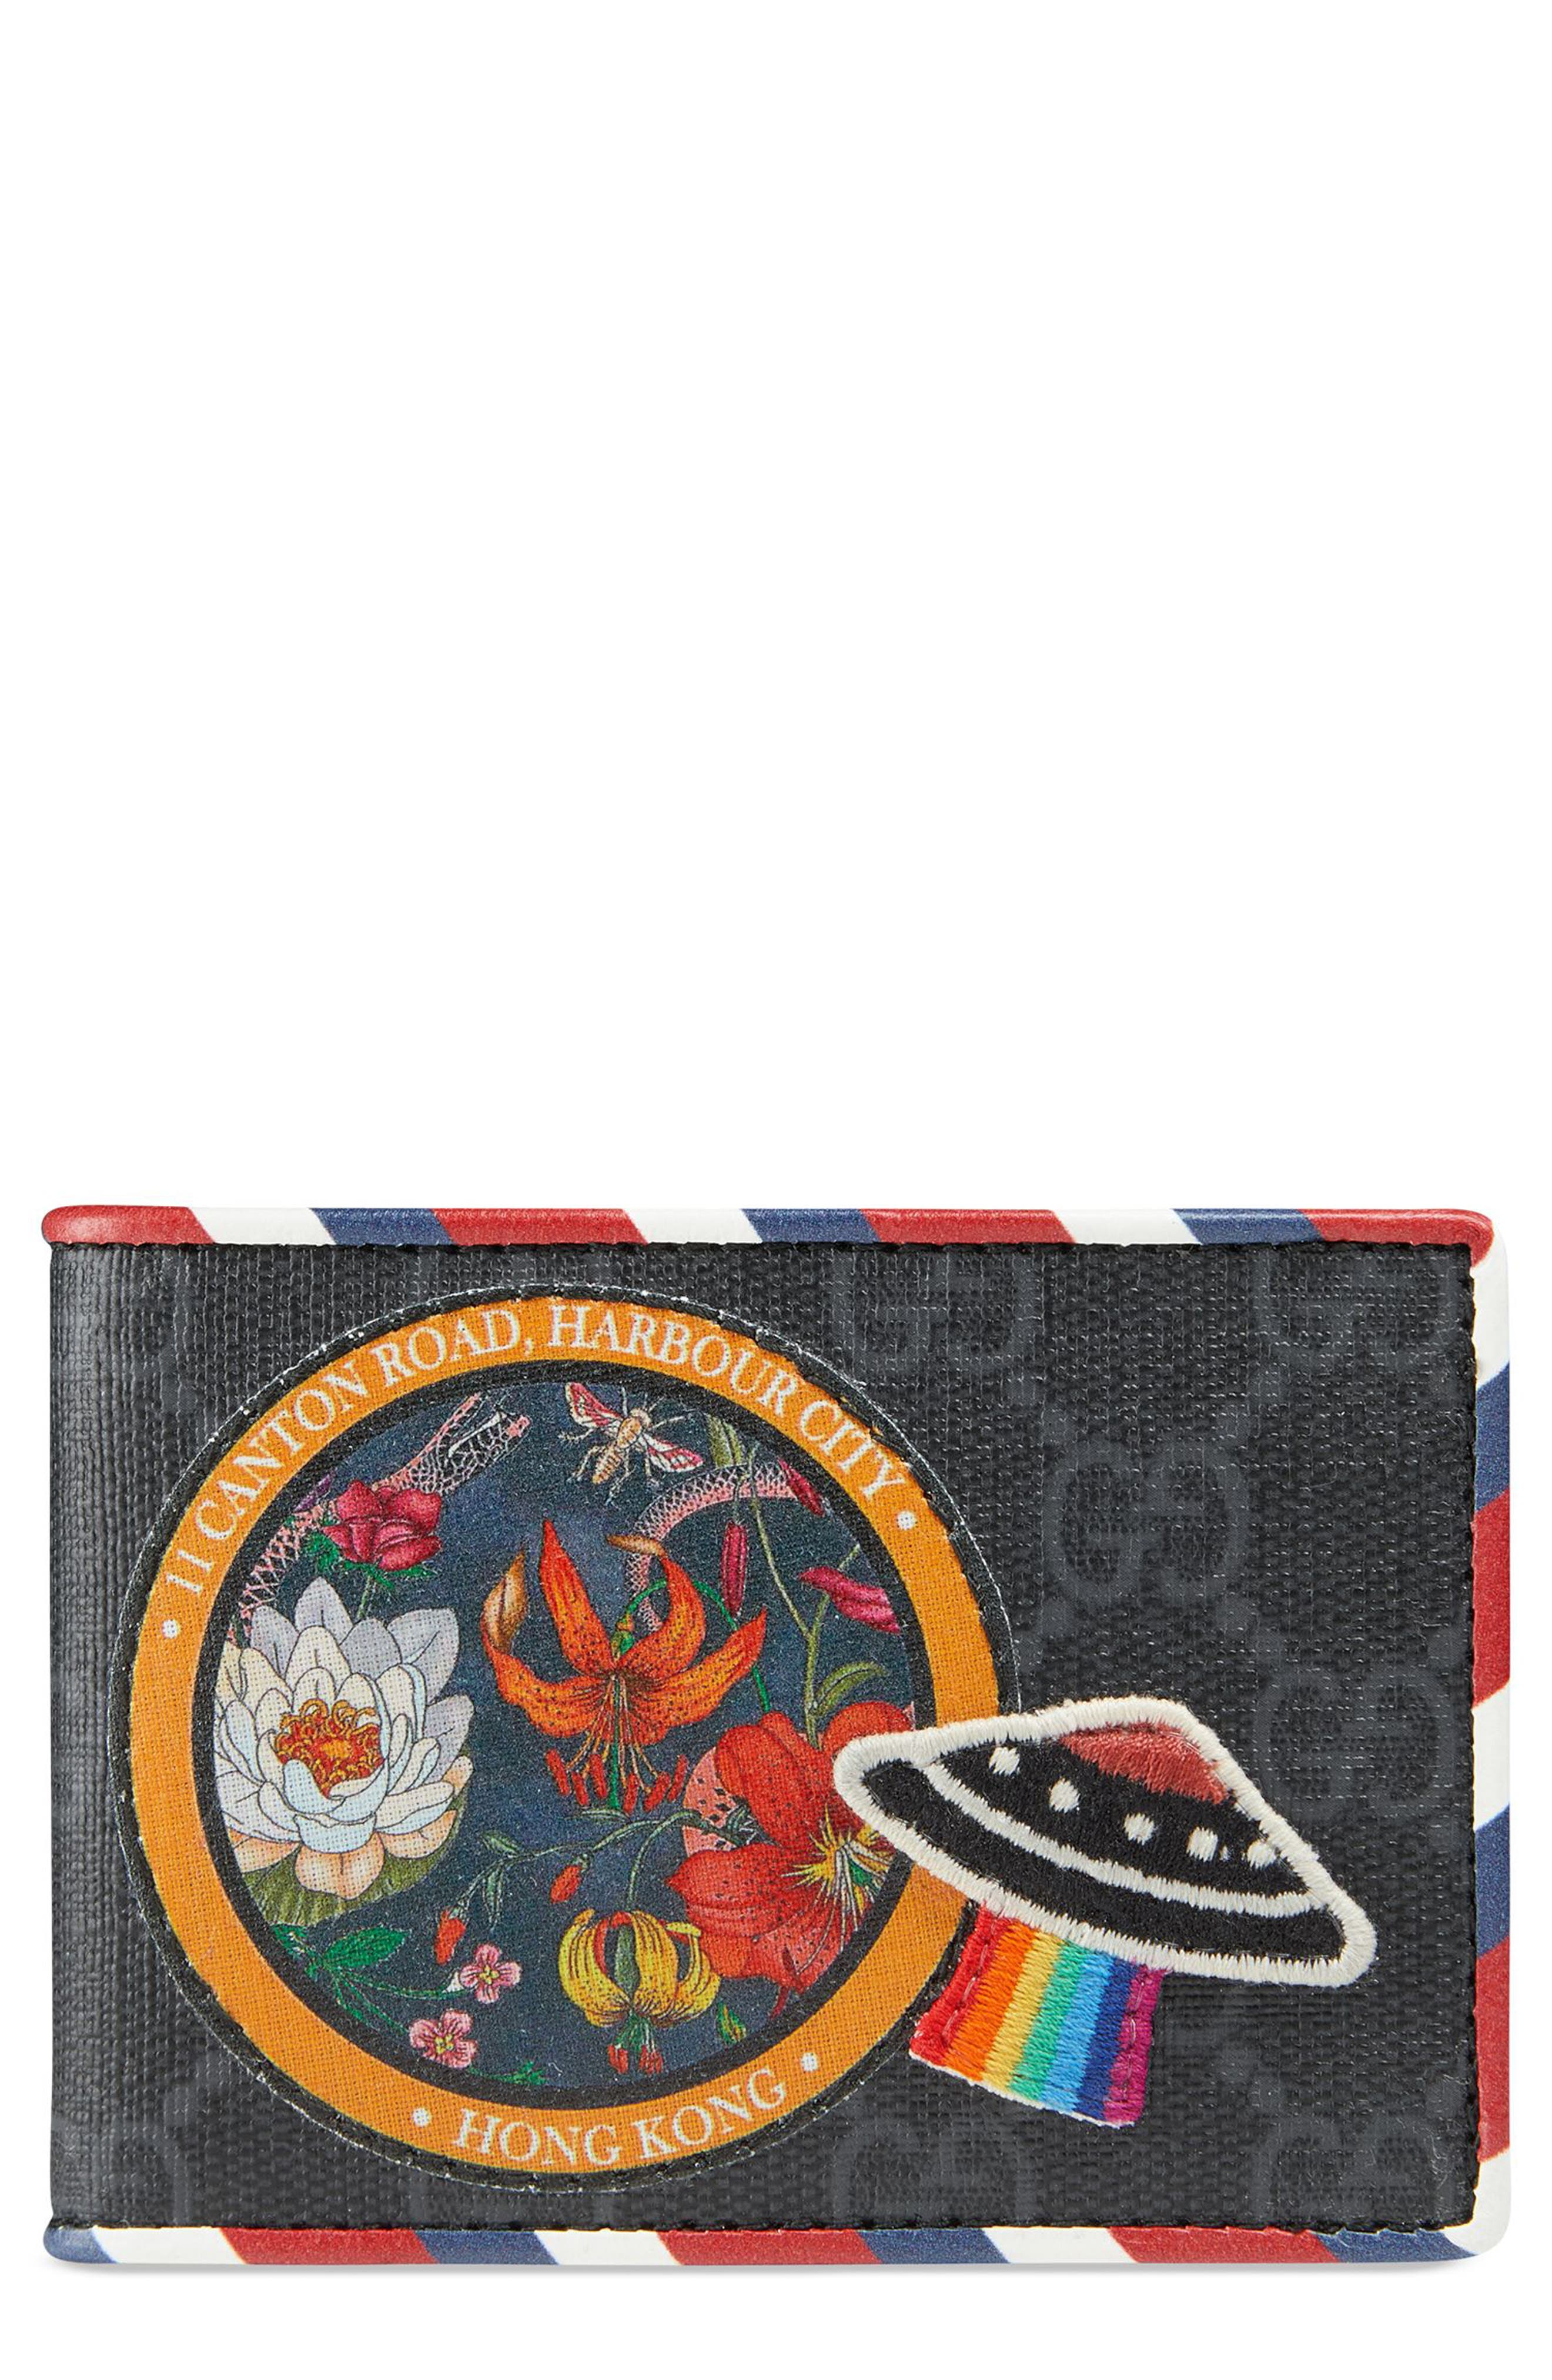 GG Supreme Patch Wallet,                             Main thumbnail 1, color,                             Black